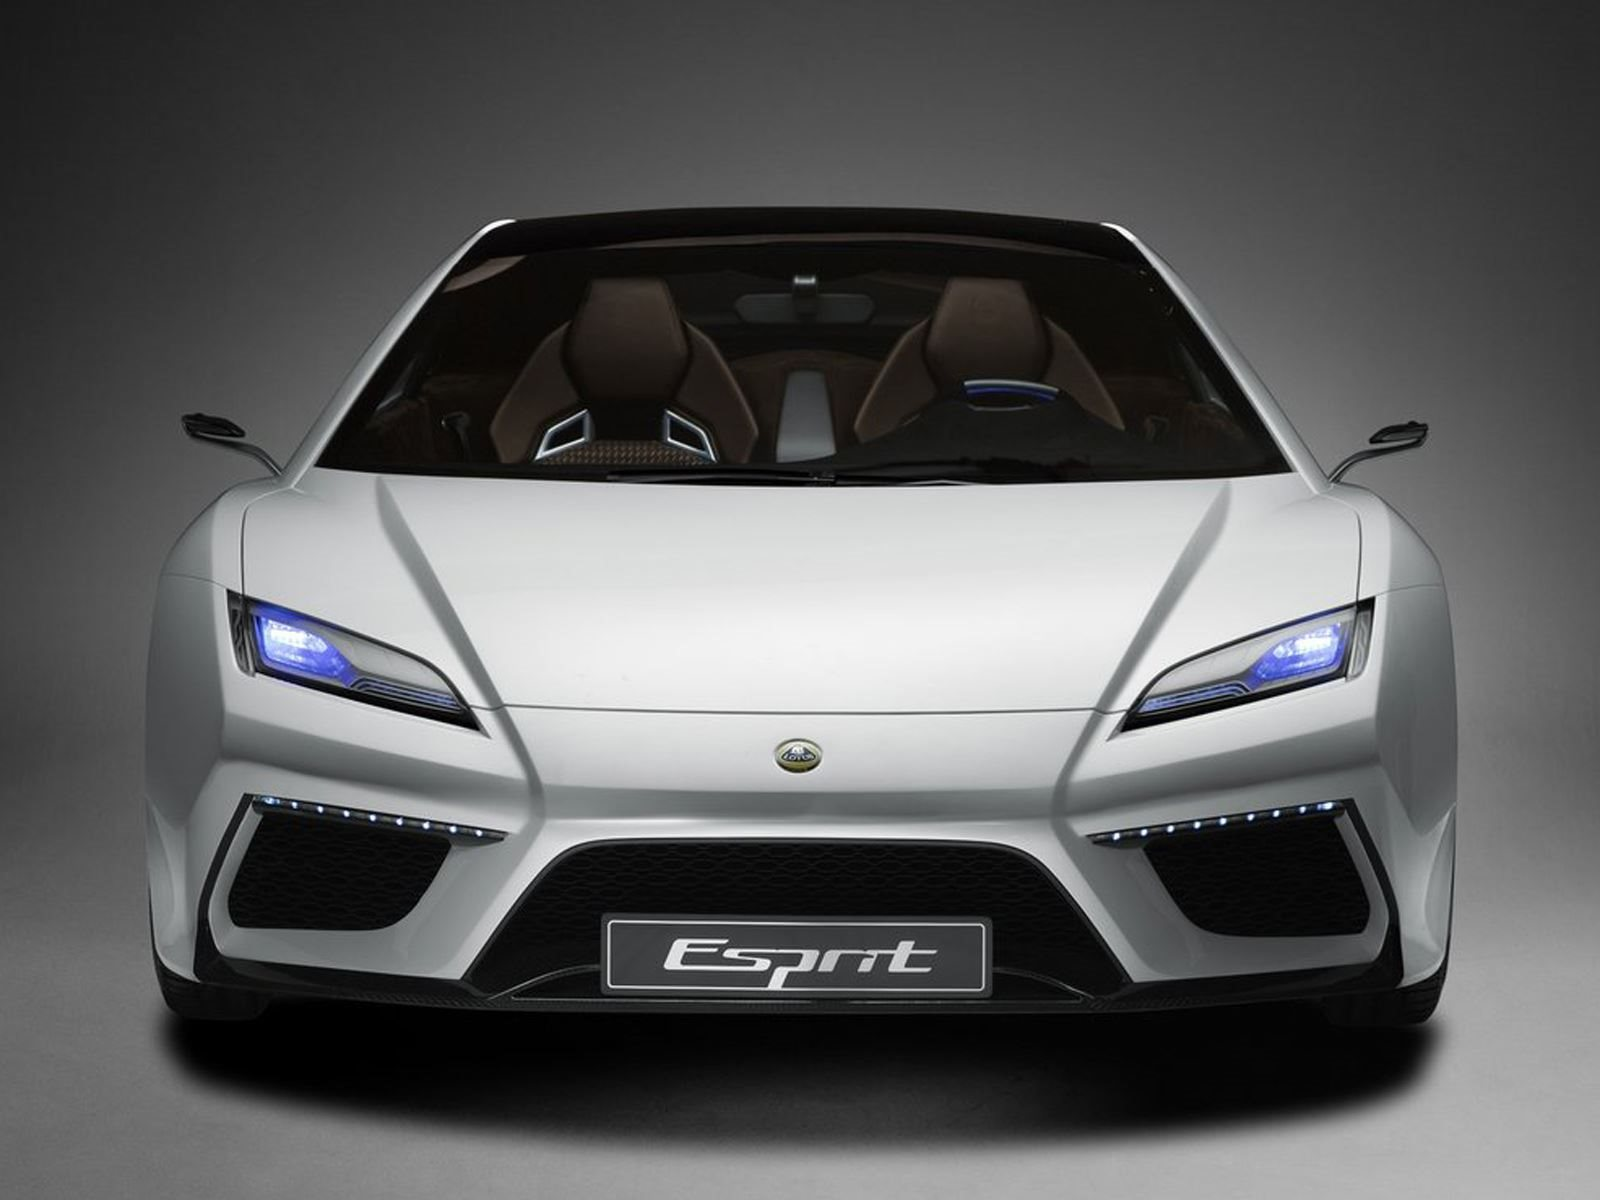 Lotus to Develop a New V6 Hybrid Sports Car 1